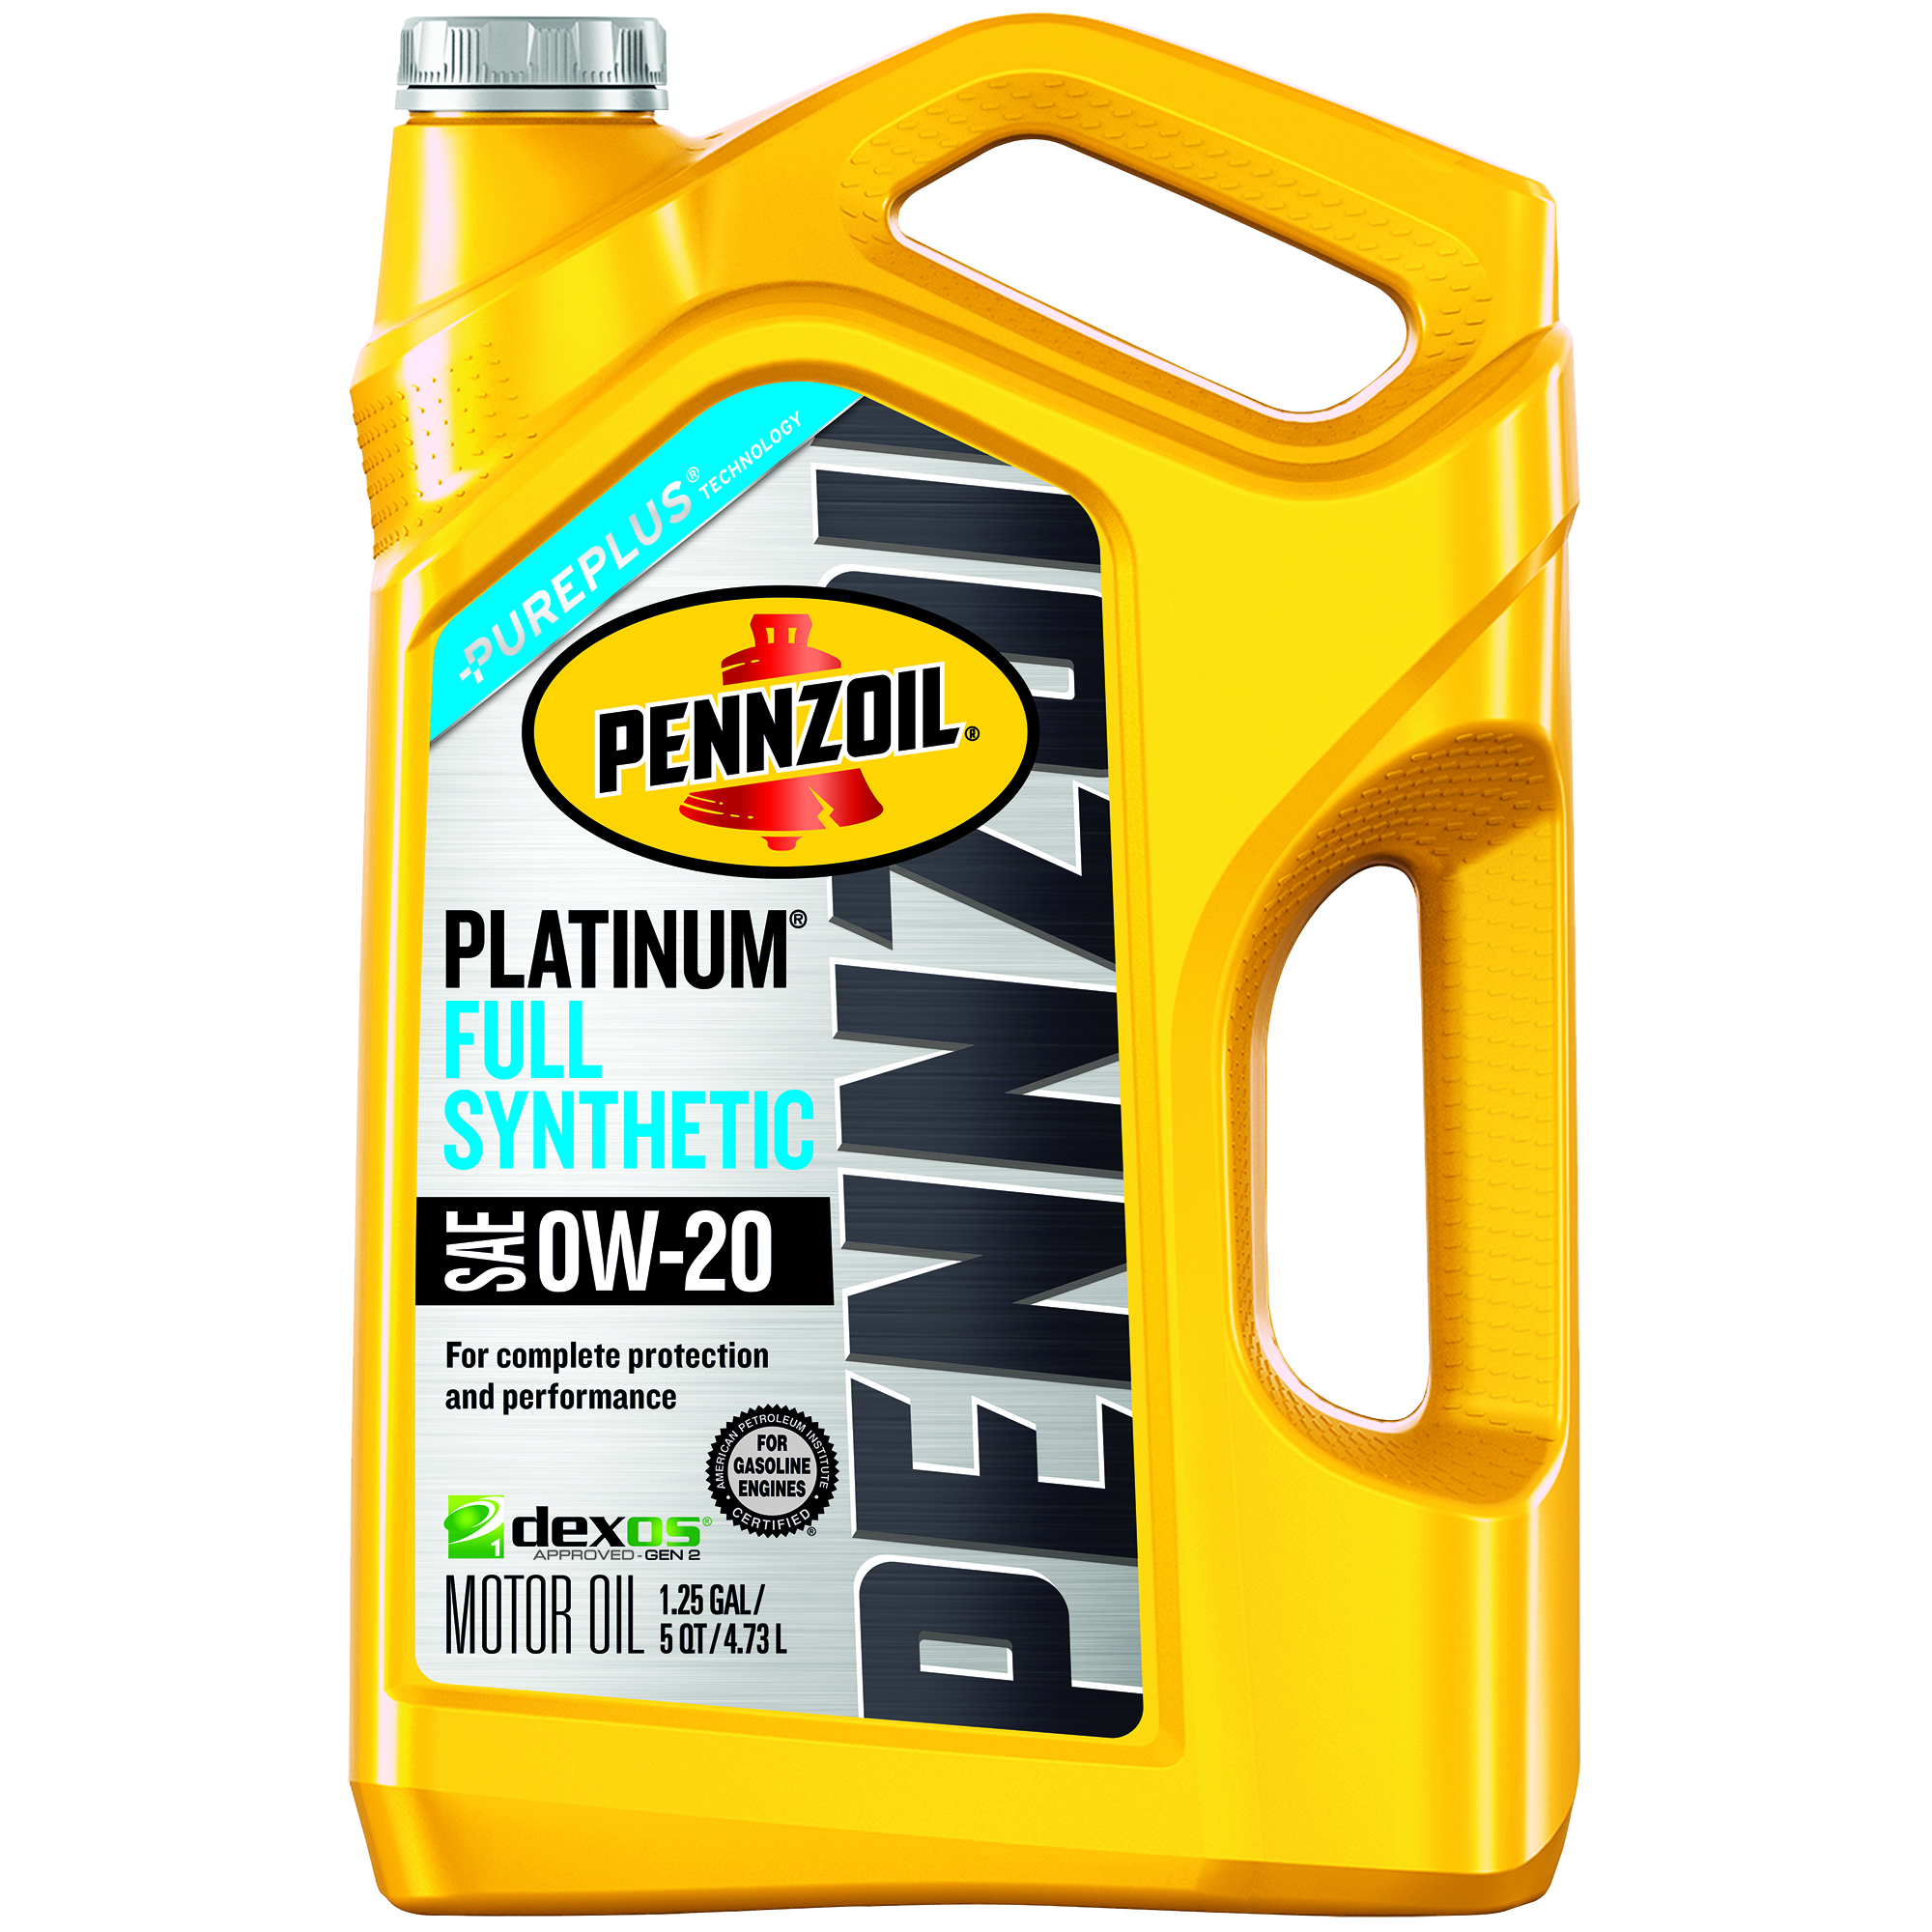 Pennzoil Platinum 0W-20 Dexos Full Synthetic Motor Oil, 5 qt